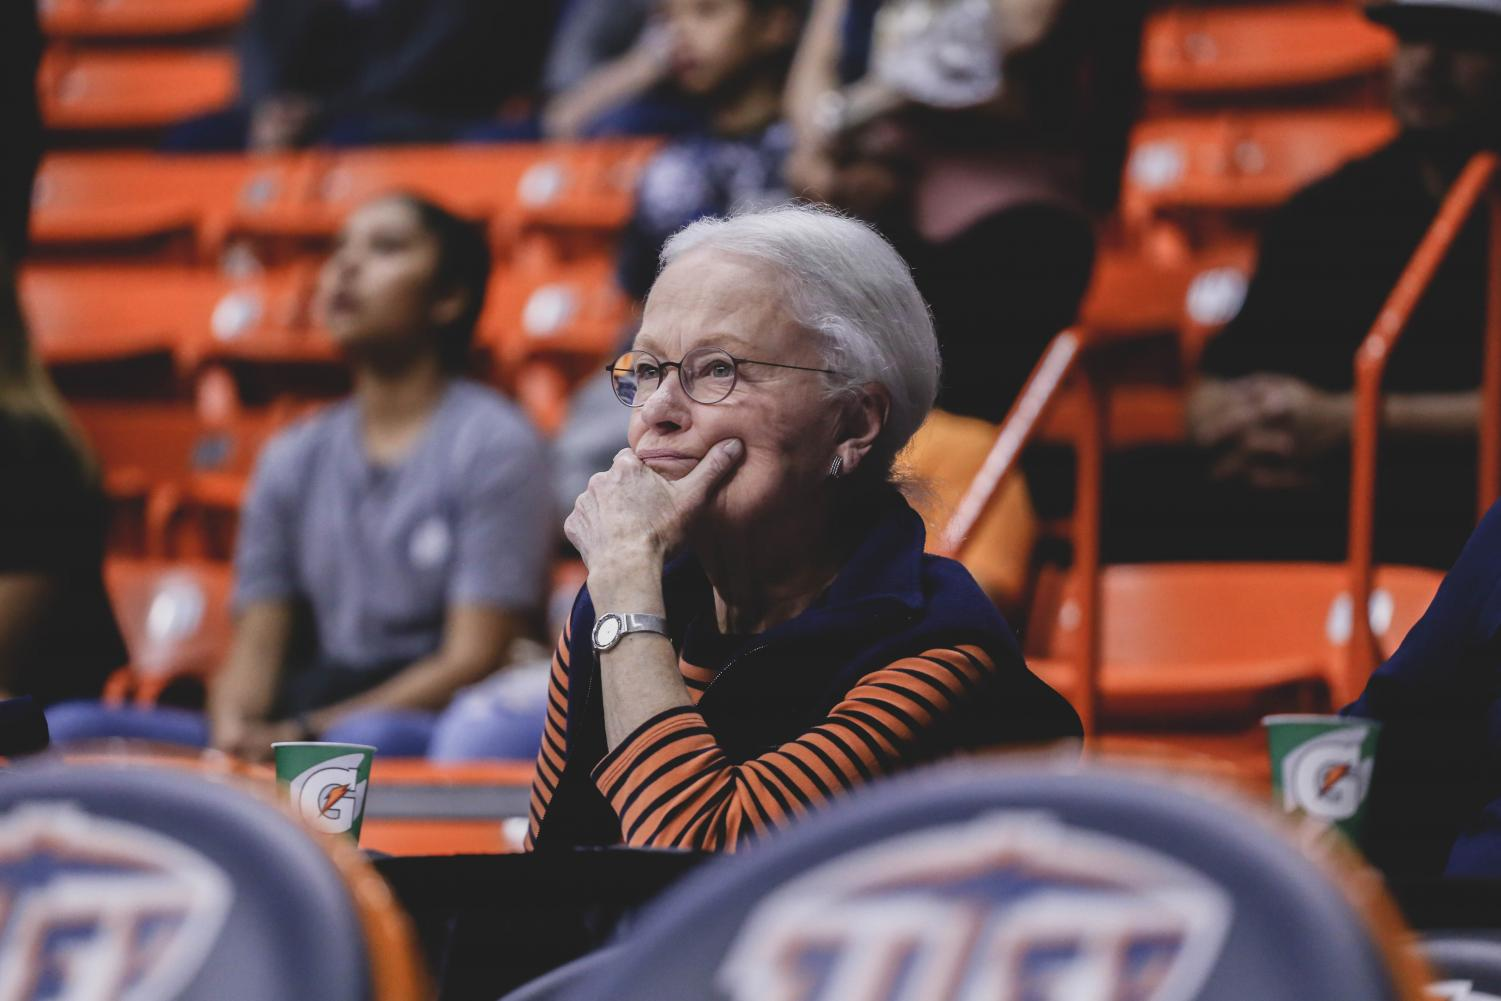 Dr.Diana Natalicio closely watches the Women's basketball game.